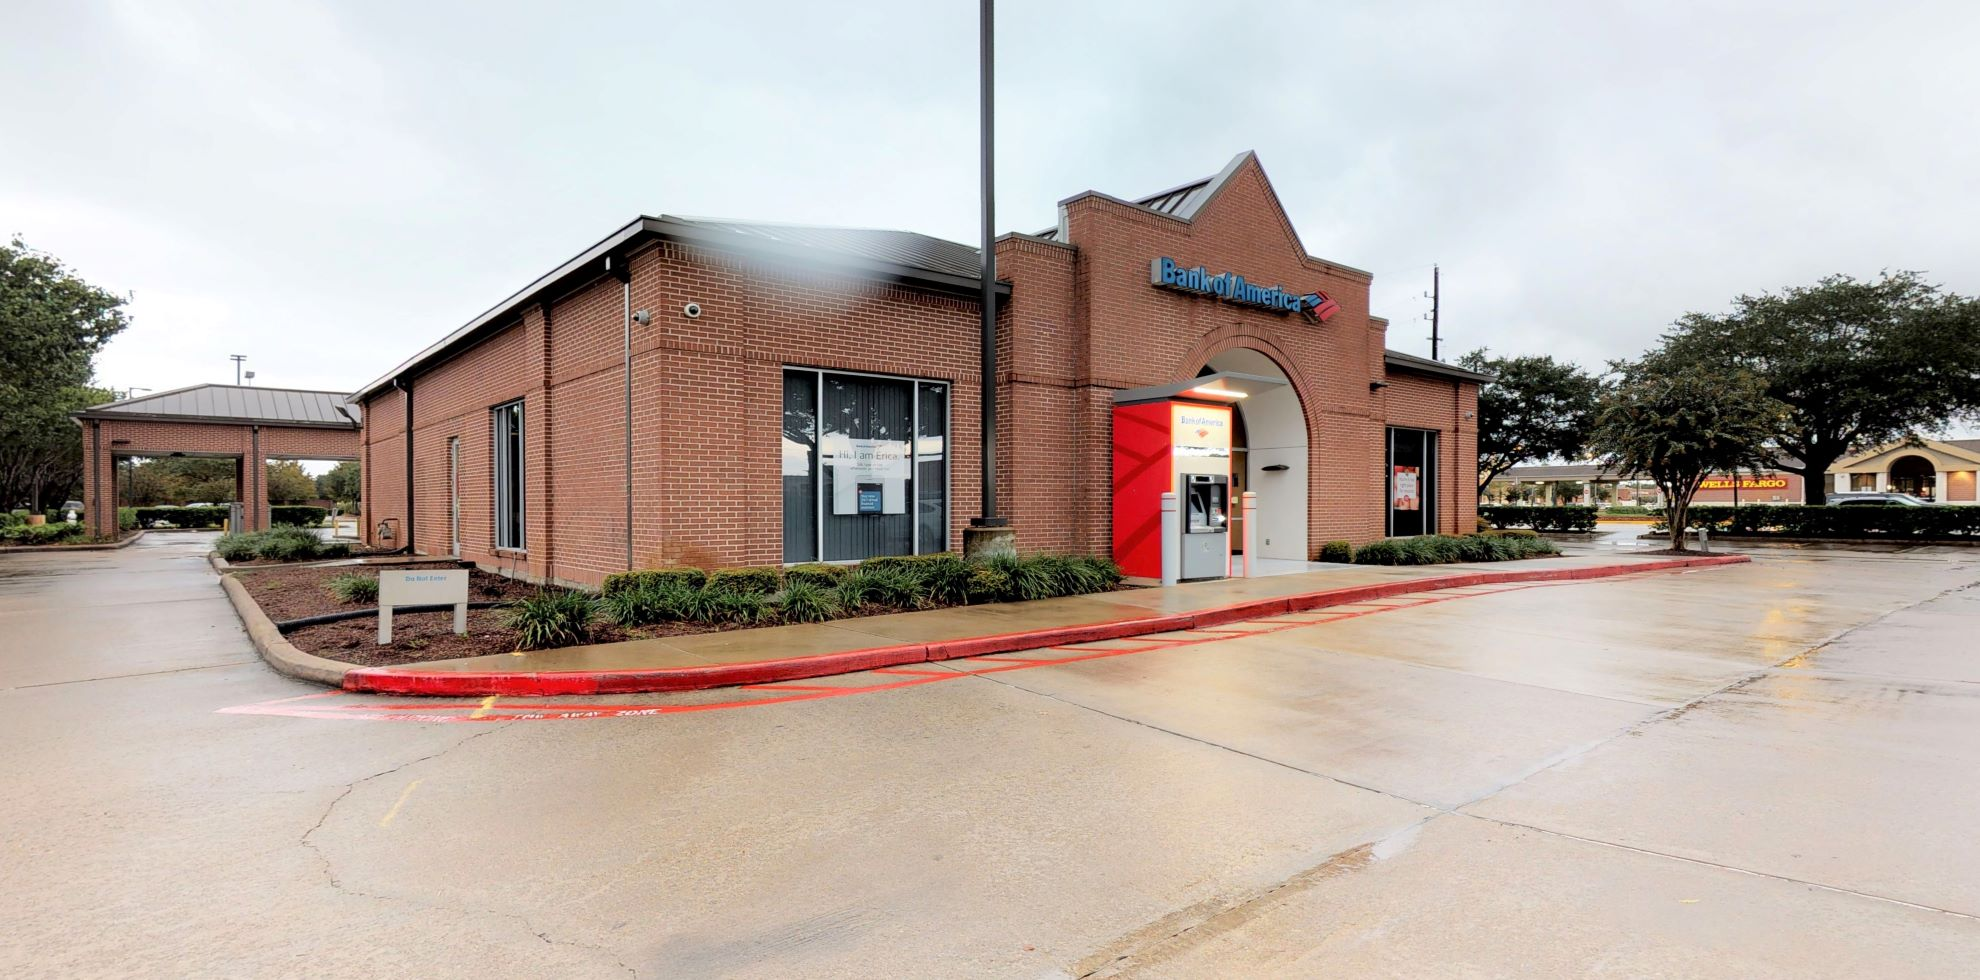 Bank of America financial center with drive-thru ATM | 4710 Highway 6, Sugar Land, TX 77479